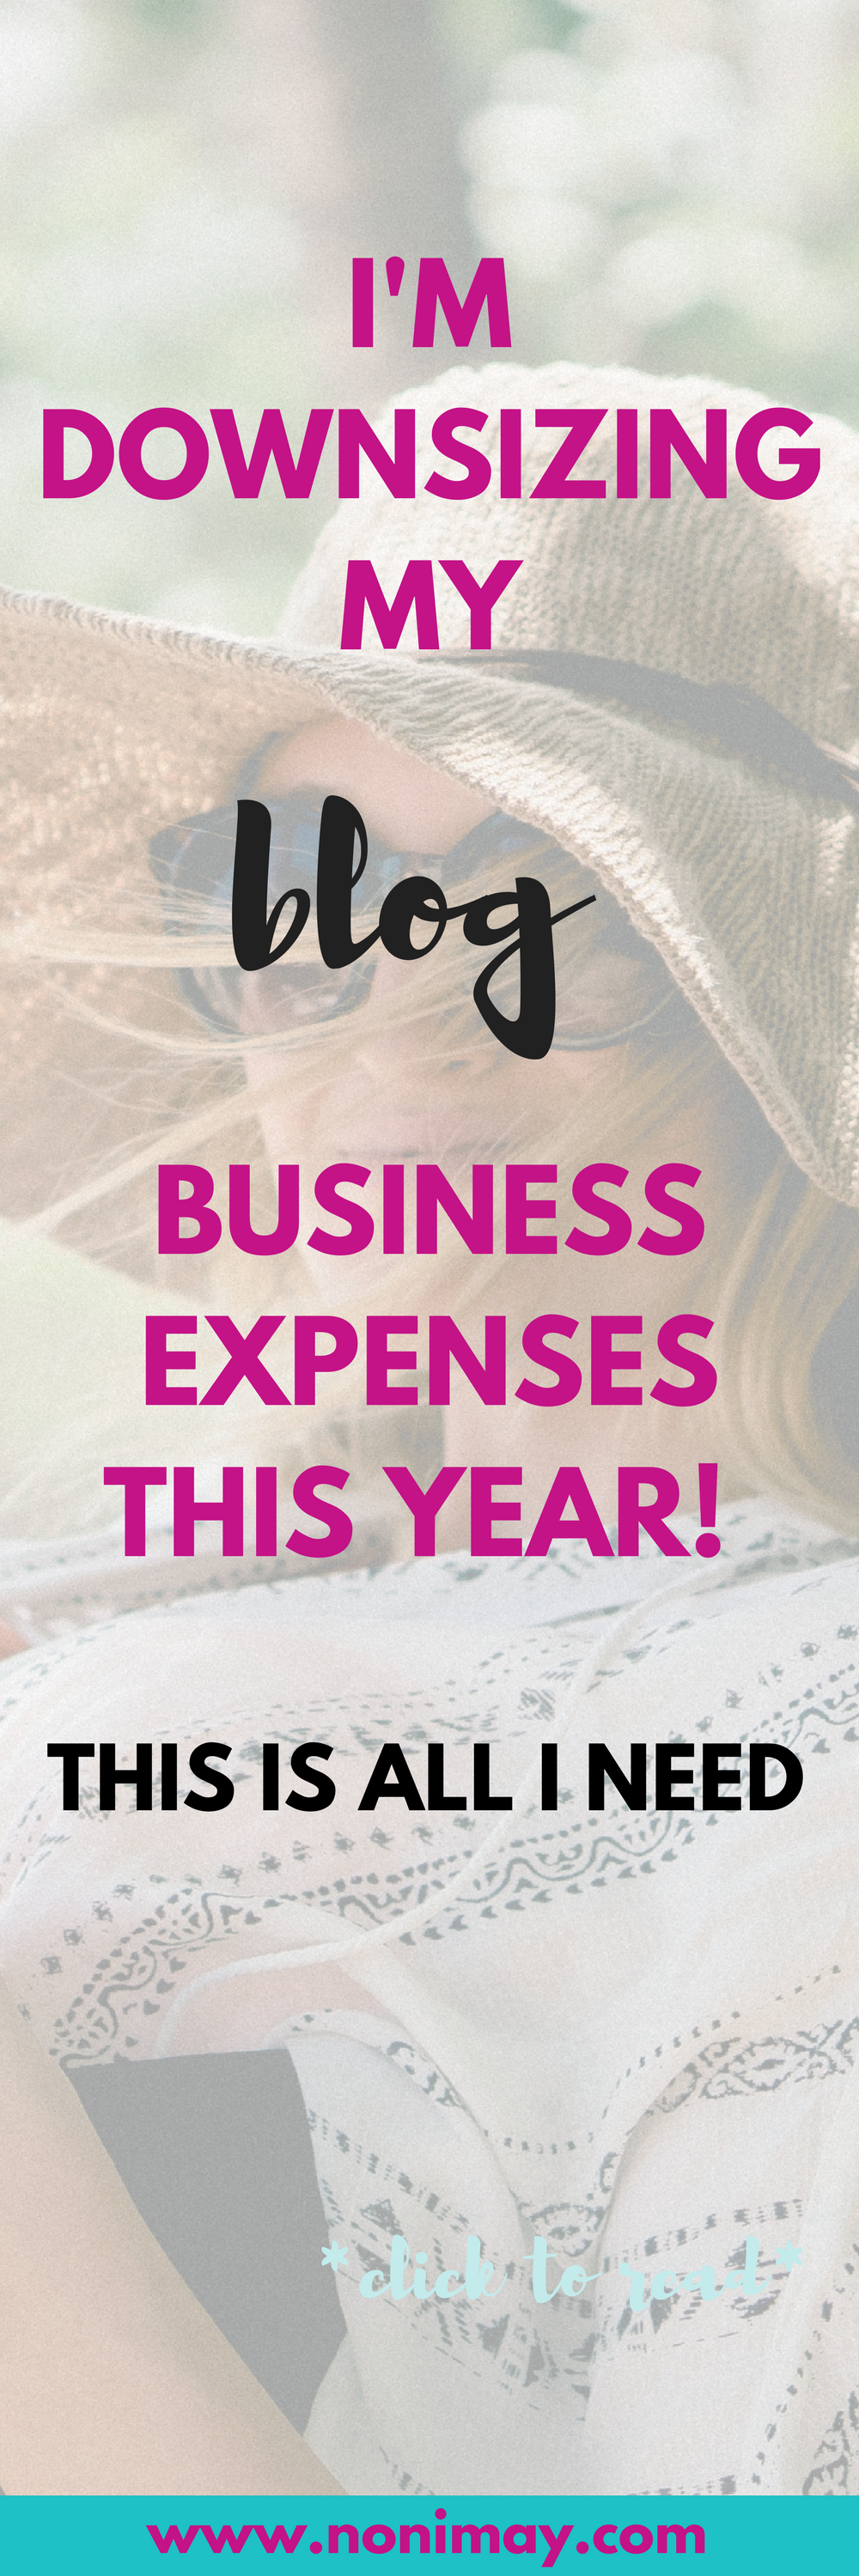 I'm downsizing my blog business expenses this year! This is all I need.